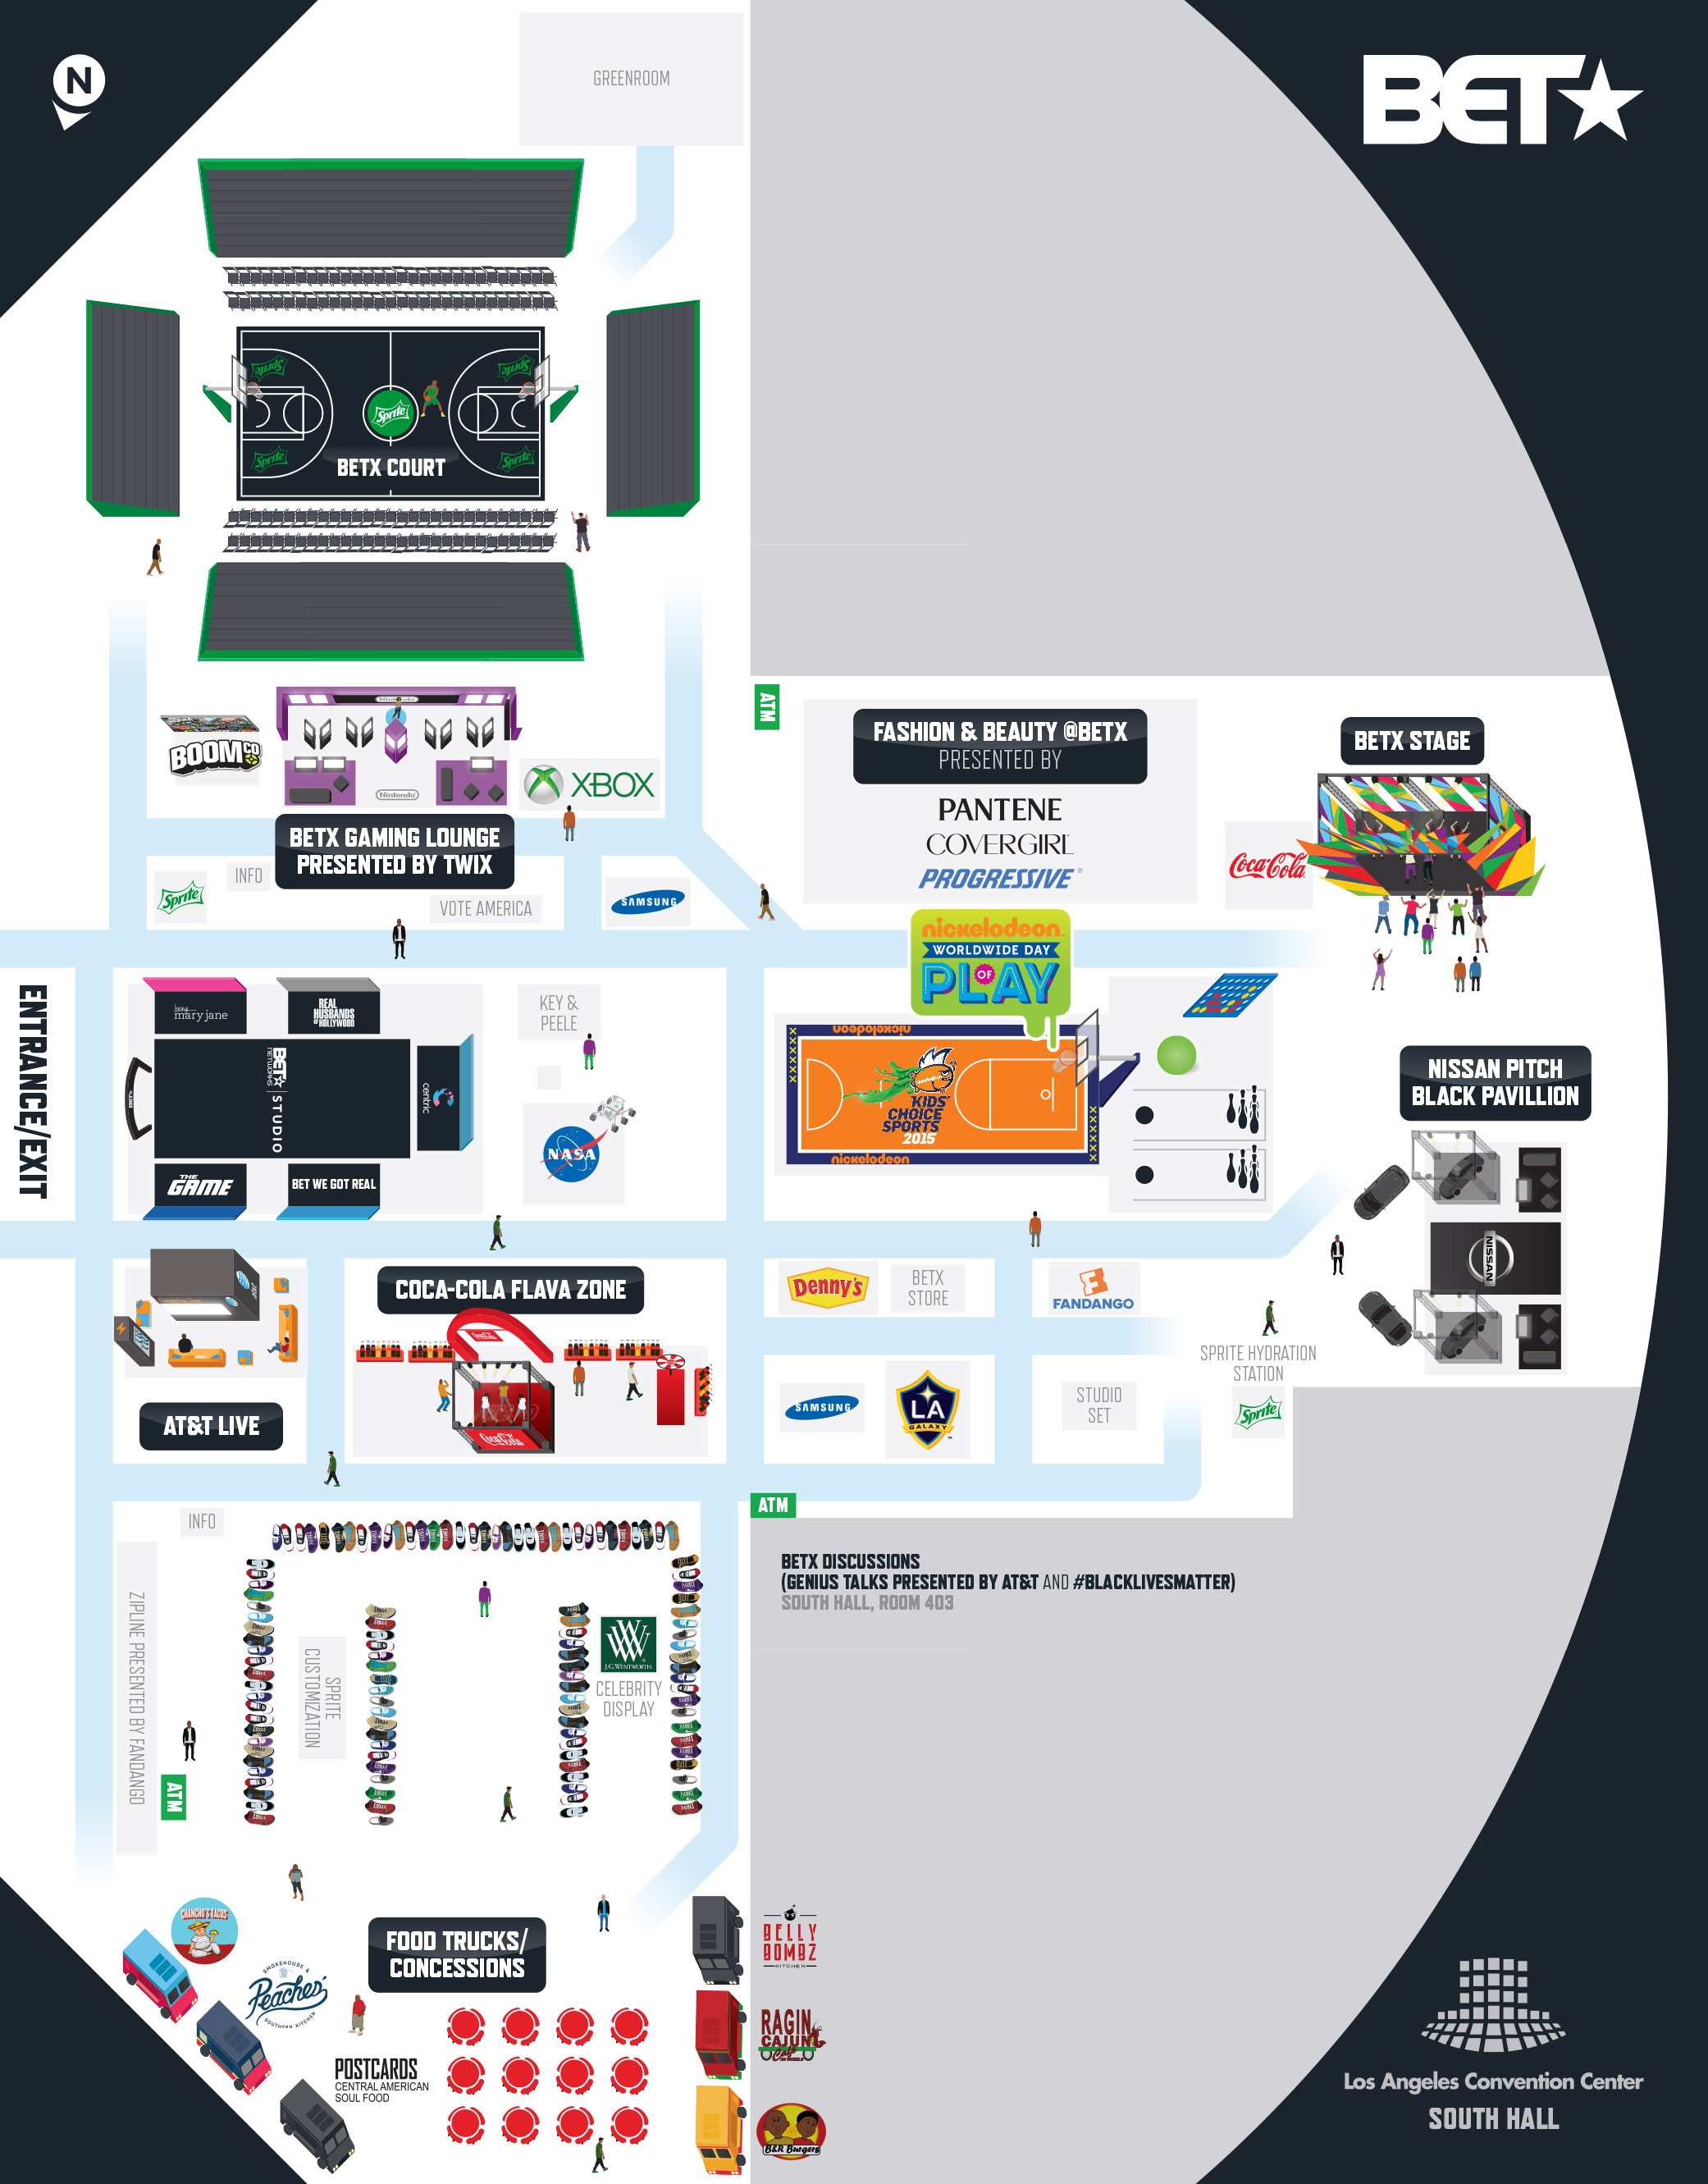 Los Angeles Convention Center Maps : angeles, convention, center, Plans, Cartifact